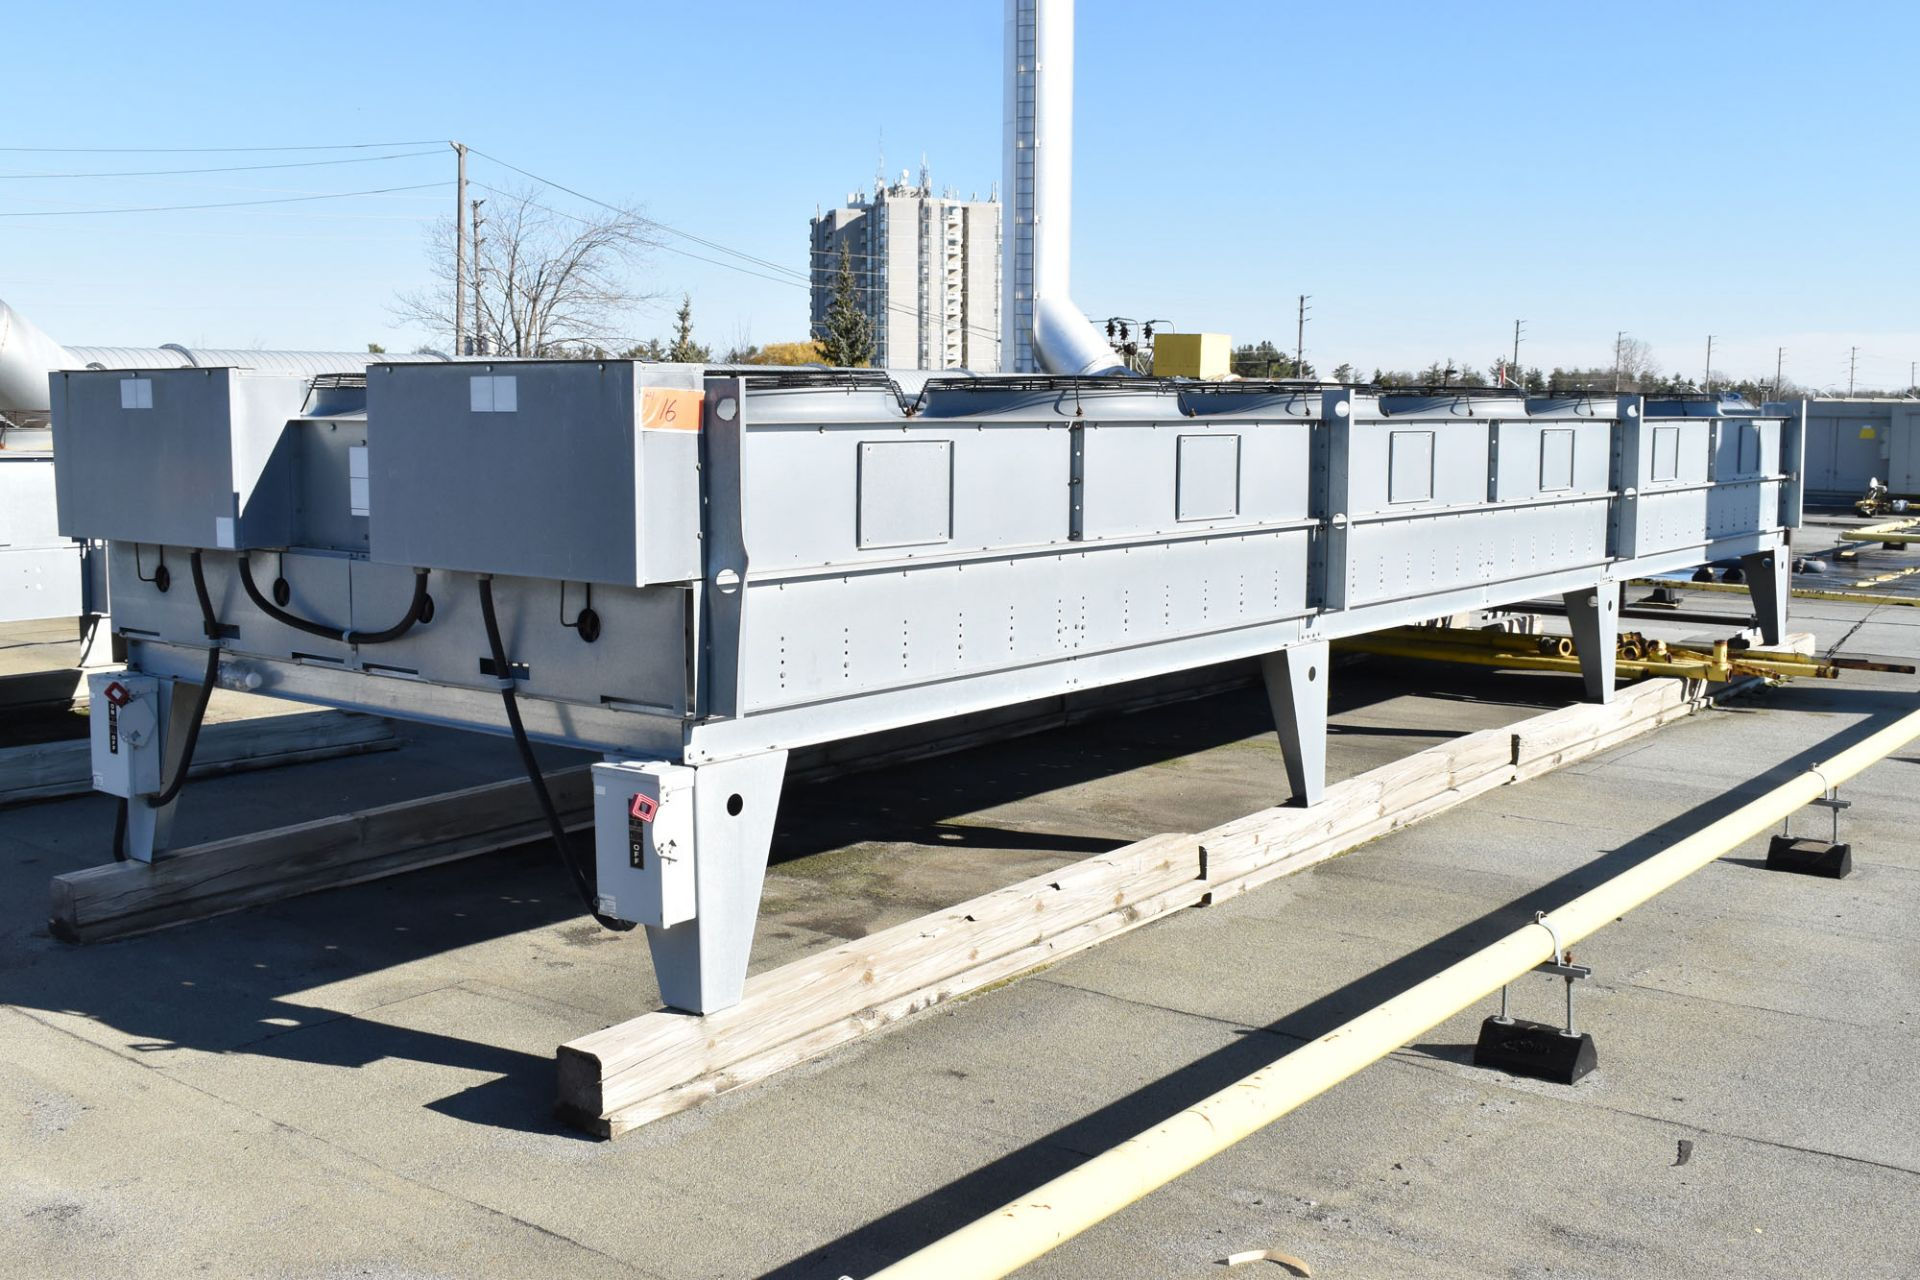 BERG AQR-160-2/2 SKID-MOUNTED INDUSTRIAL CHILLER WITH 160 TON CAPACITY, 178 HP, BERG SC6 TOUCH- - Image 7 of 13